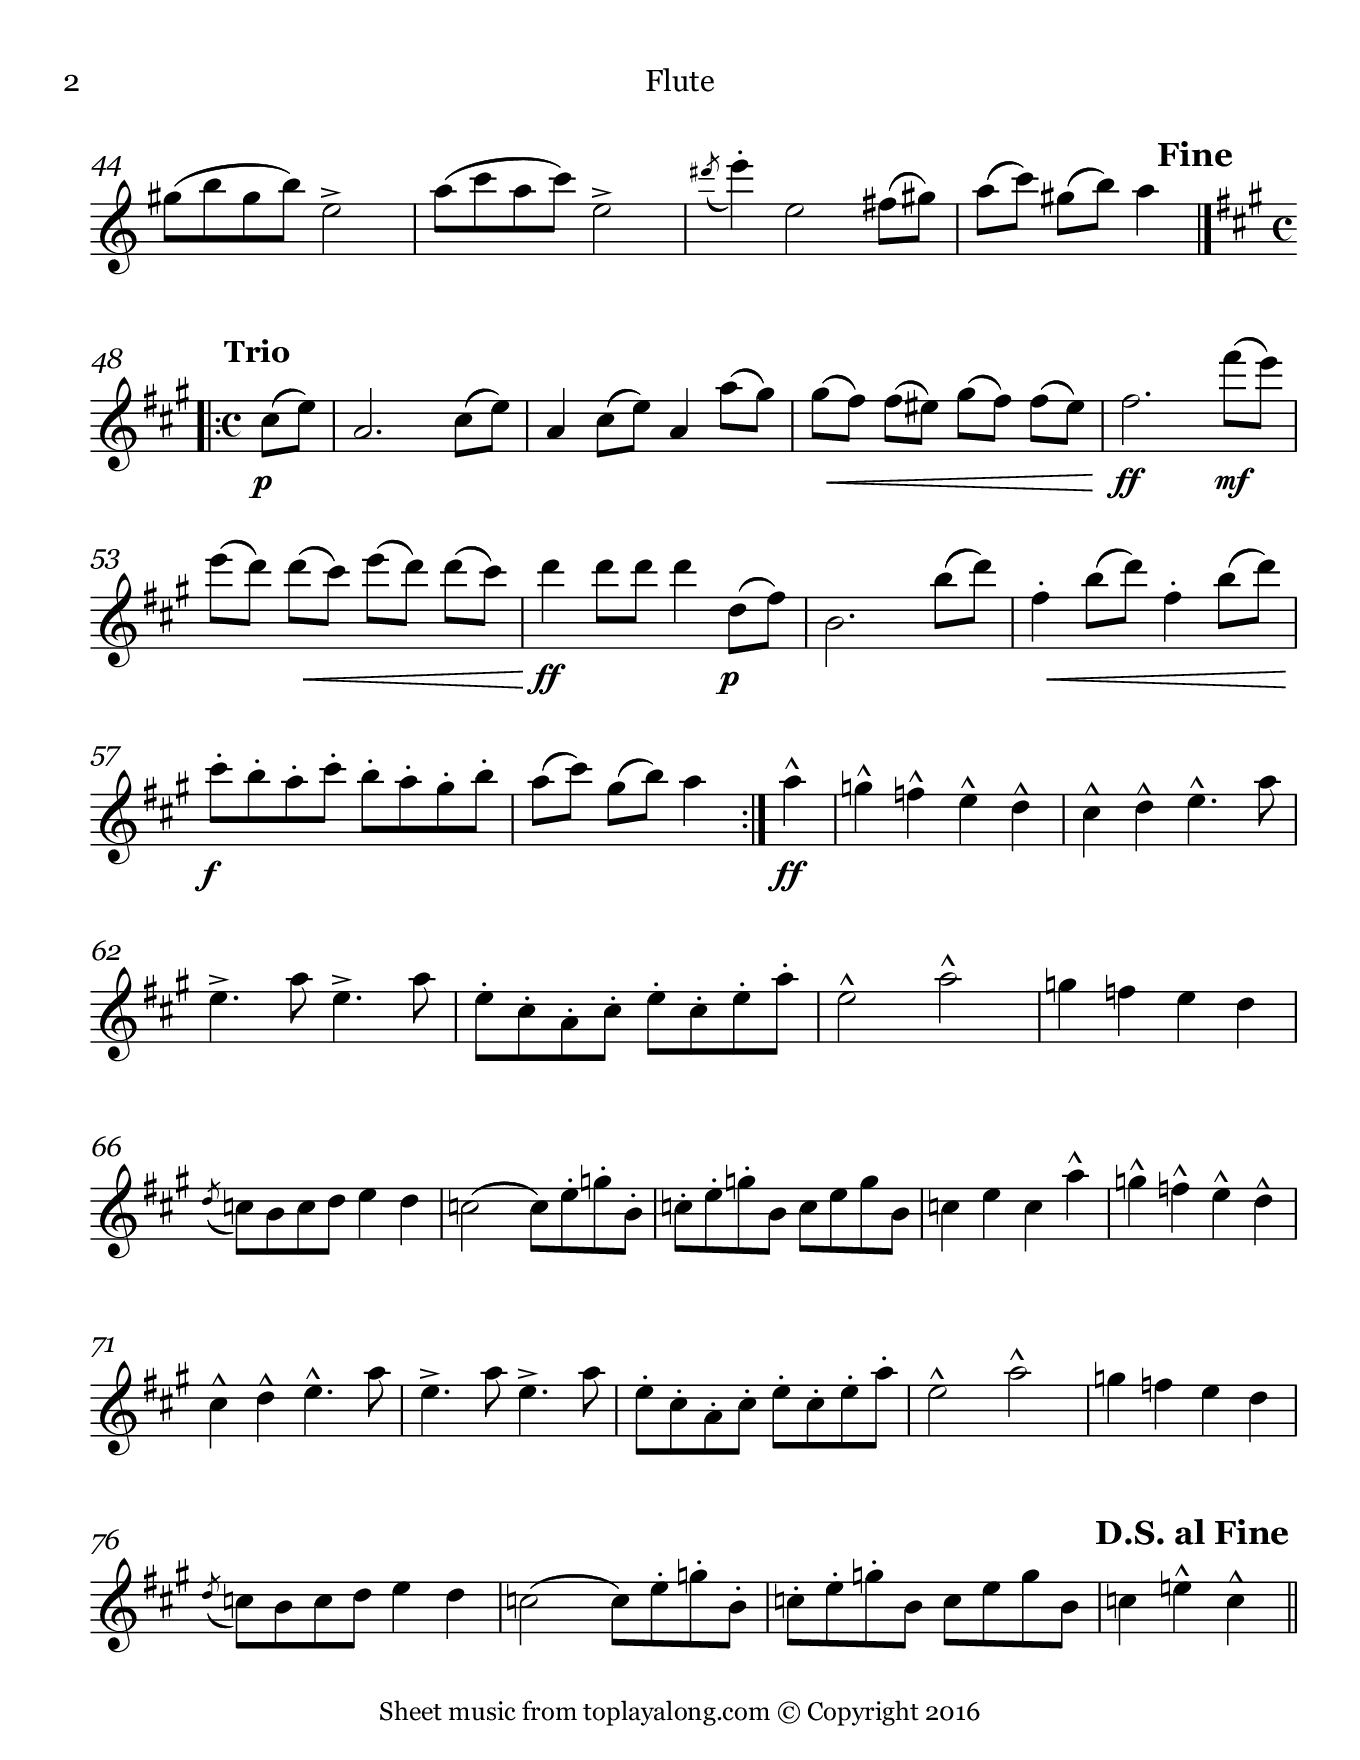 Hungarian March from Faust by Berlioz. Sheet music for Flute, page 2.